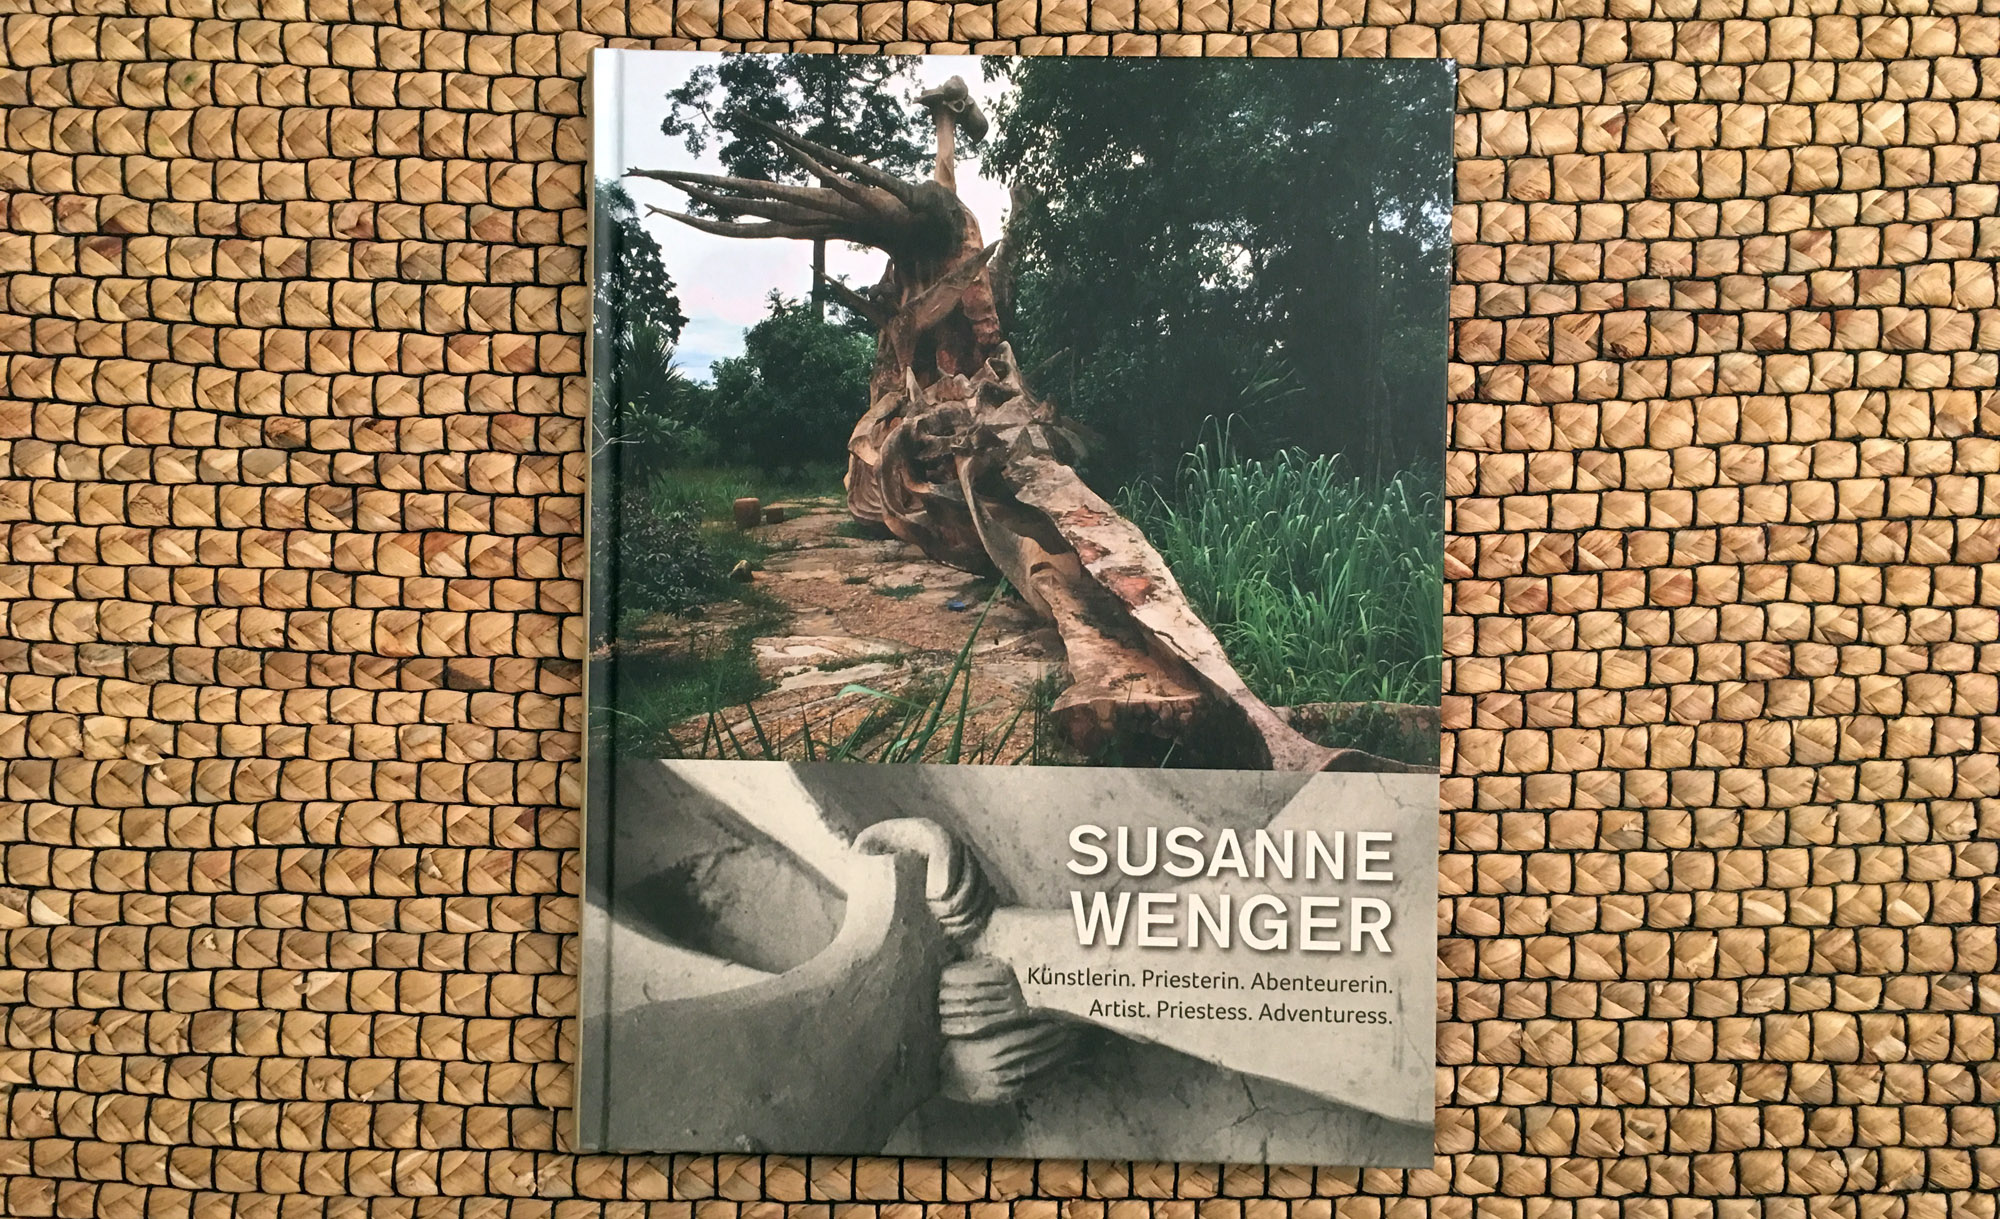 The new publication in German and English by Wolfgang Denk: Susanne Wenger. Artist, Priestess, Adventuress. Residenzverlag, Vienna, 2015.©Wolfgang Denk